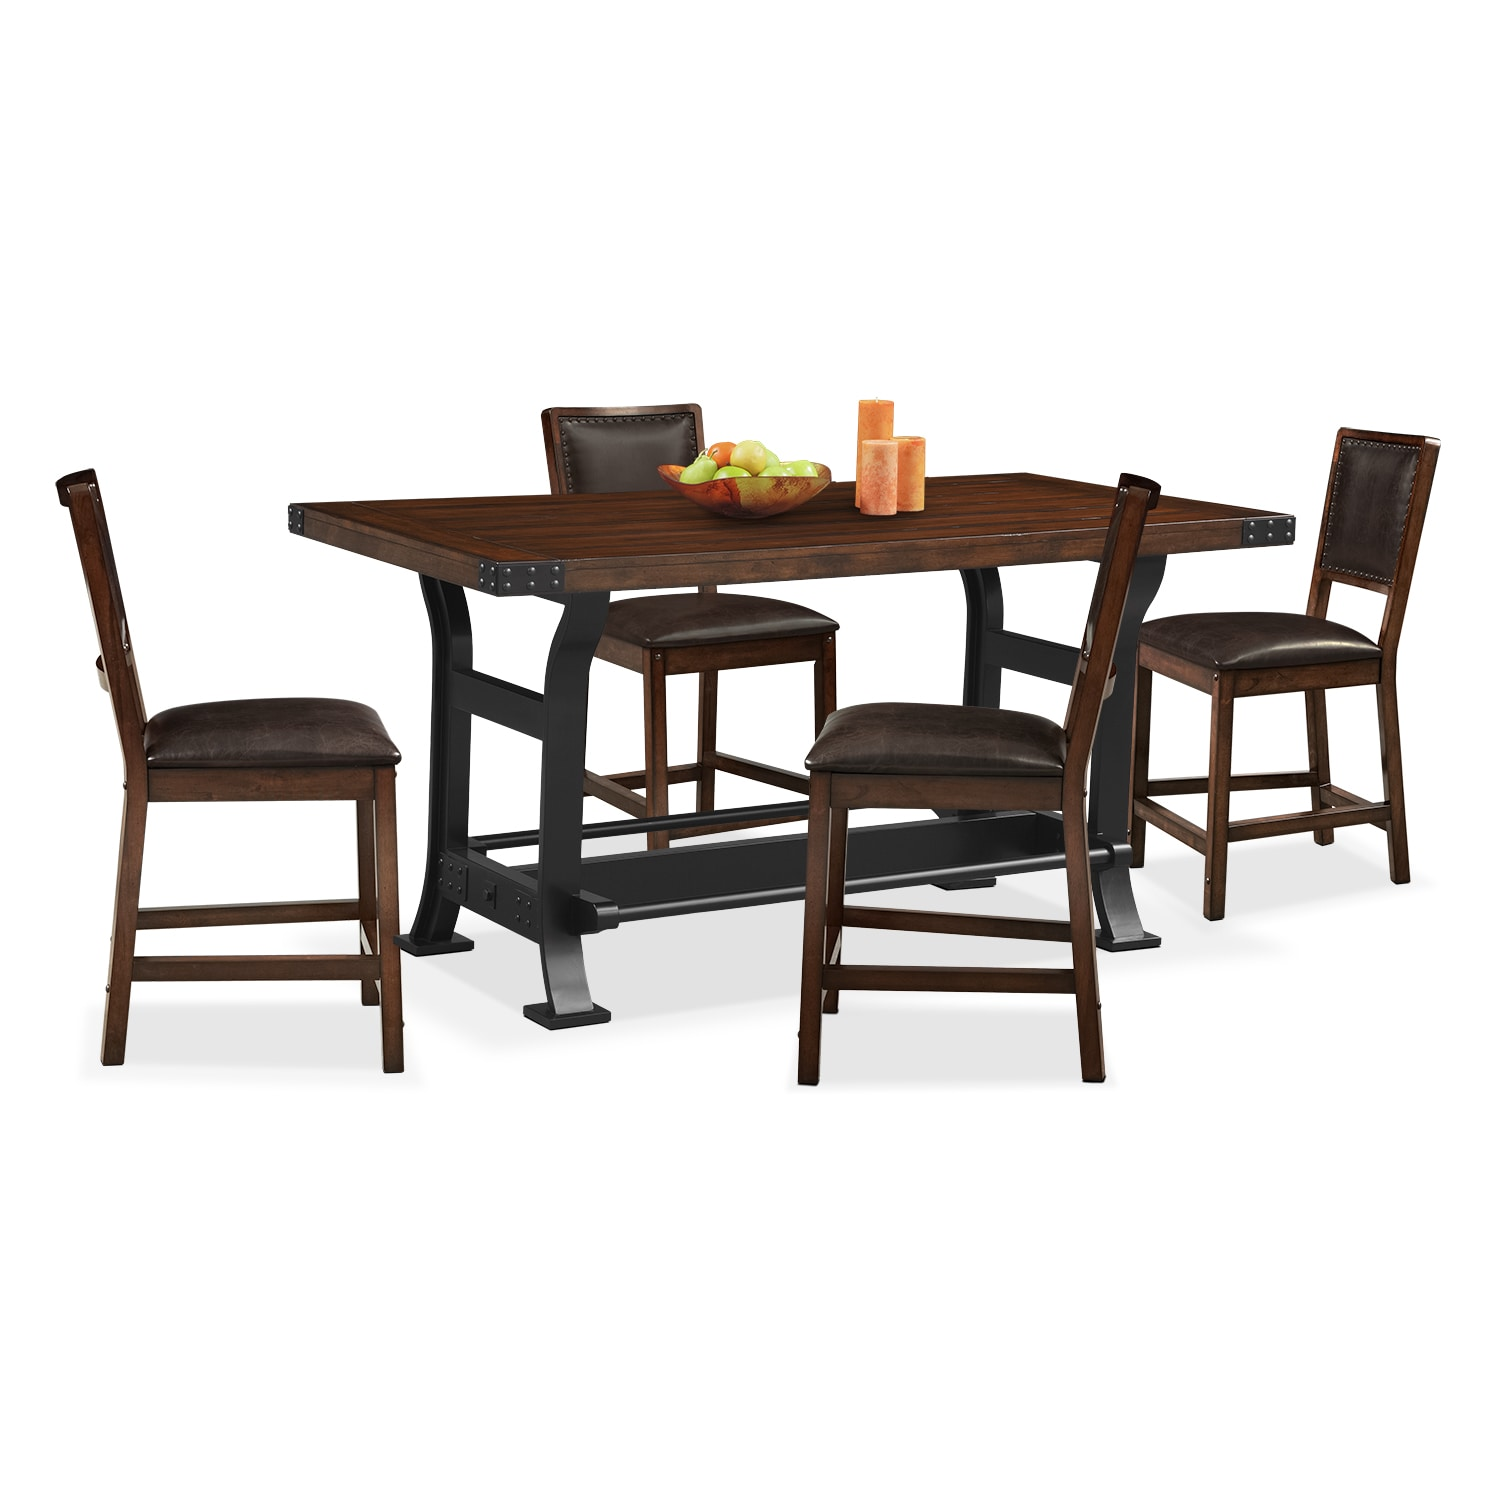 Newcastle Counter Height Table And 4 Chairs Mahogany American Signature F